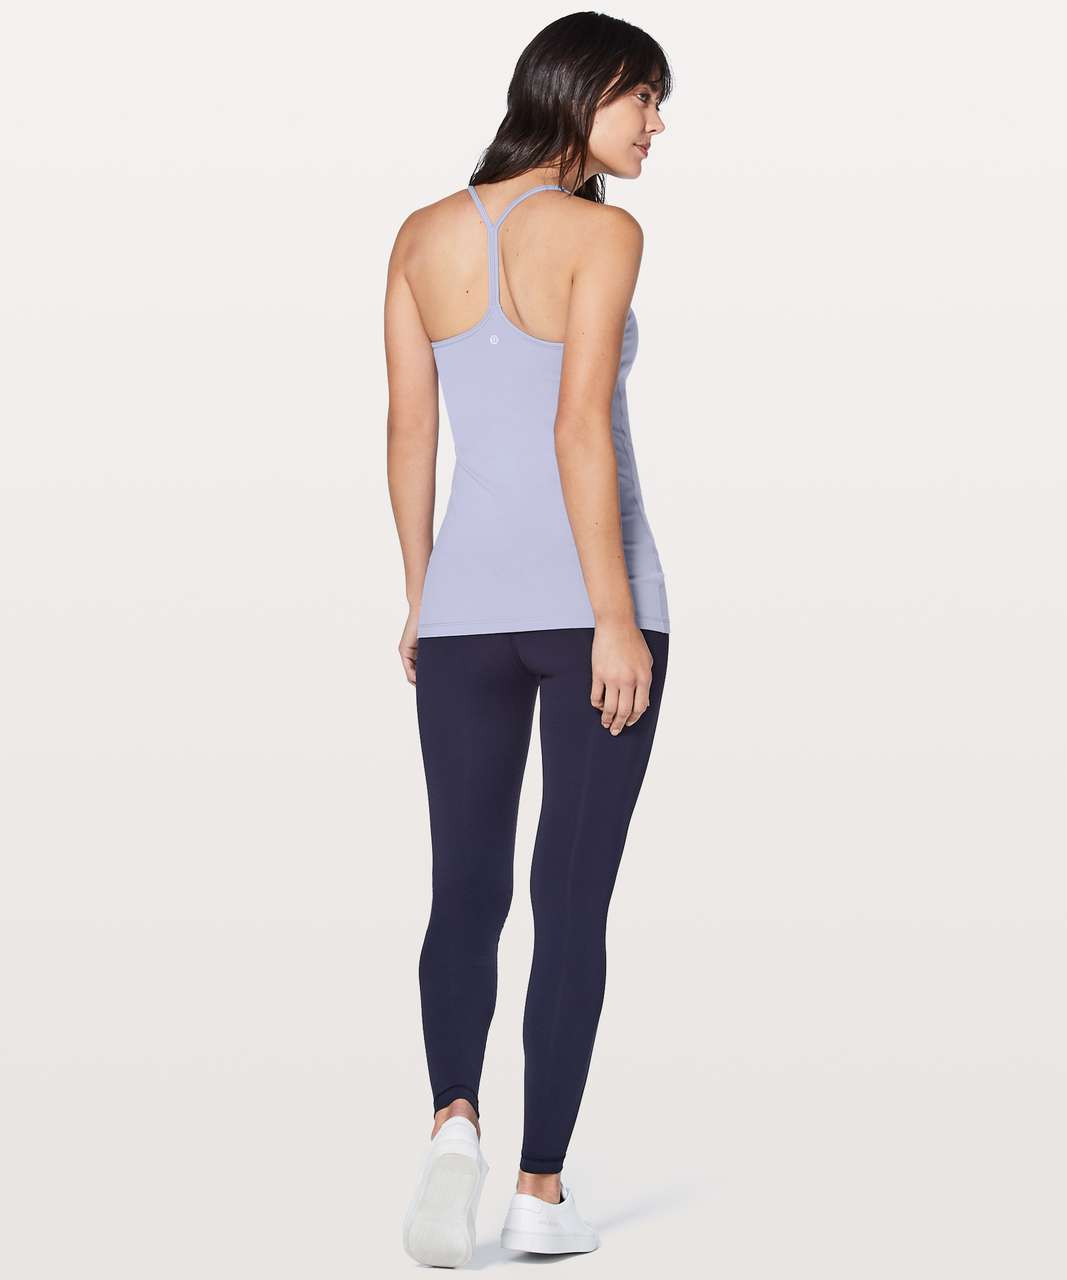 Lululemon Power Pose Tank *Light Support For A/B Cup - Misty Moon